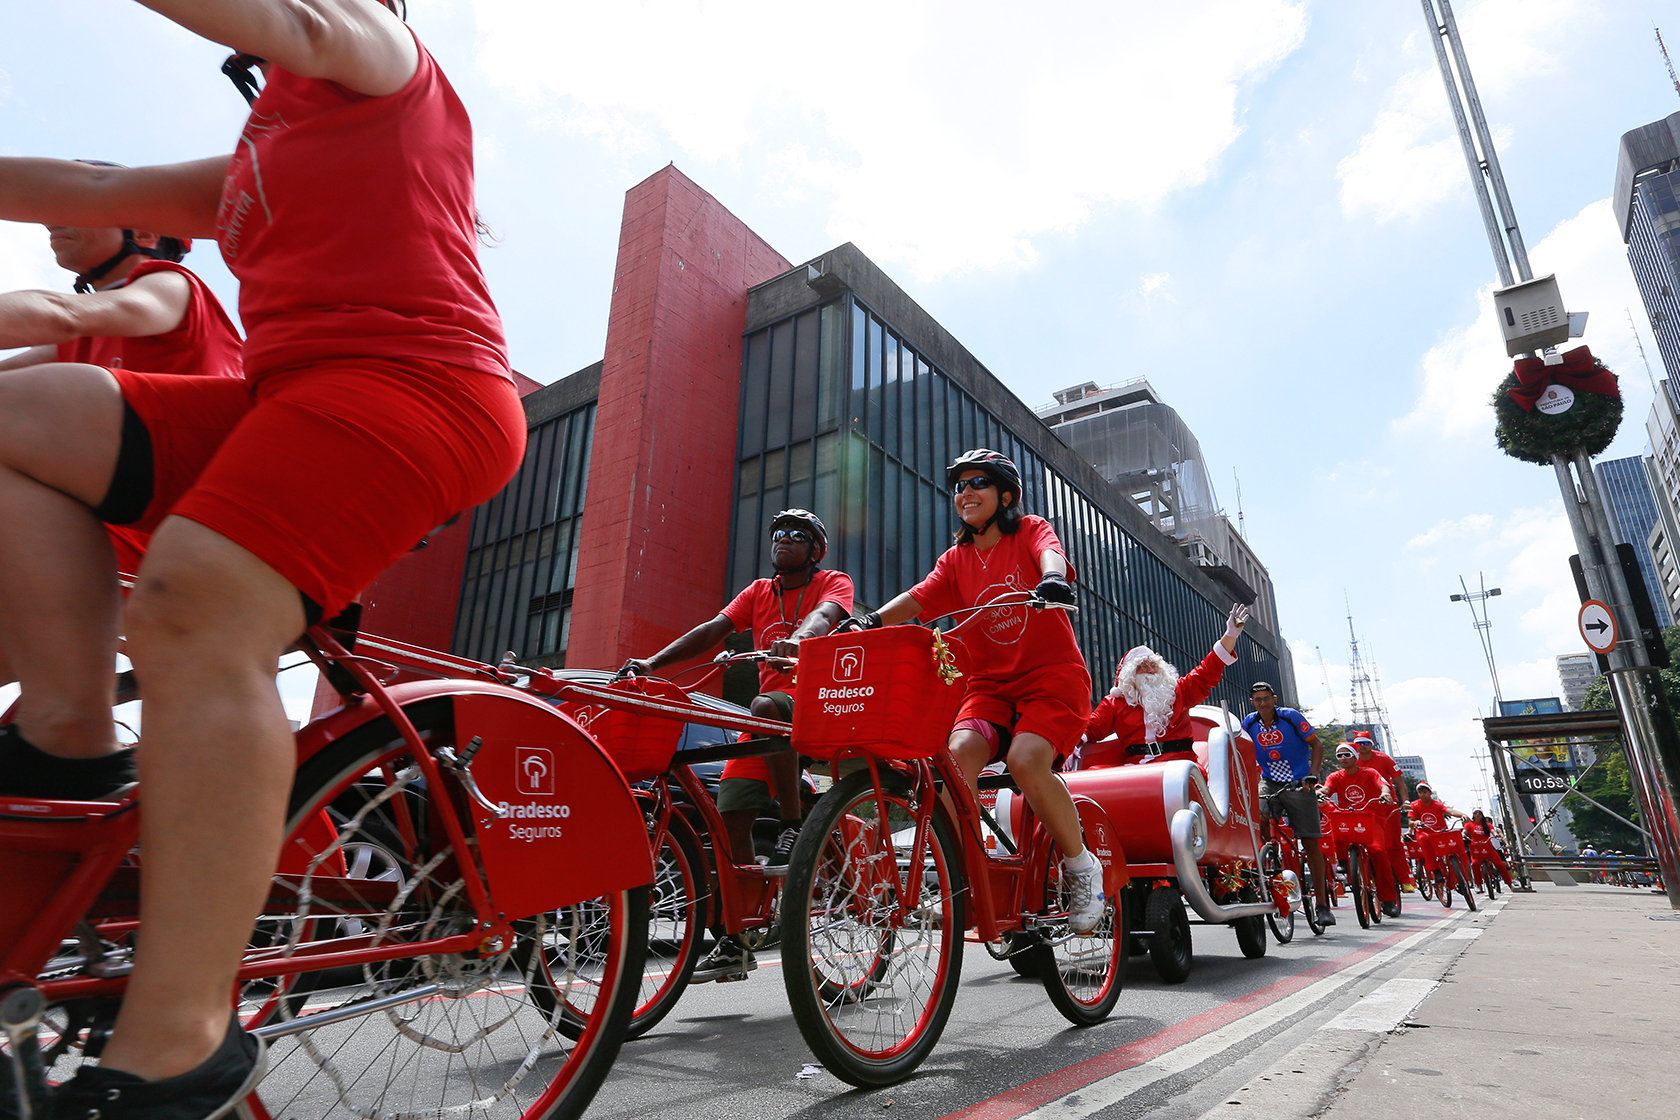 Sled driven by cyclists travels 'Christmas Illuminated' on Paulista Avenue in Sao Paulo.